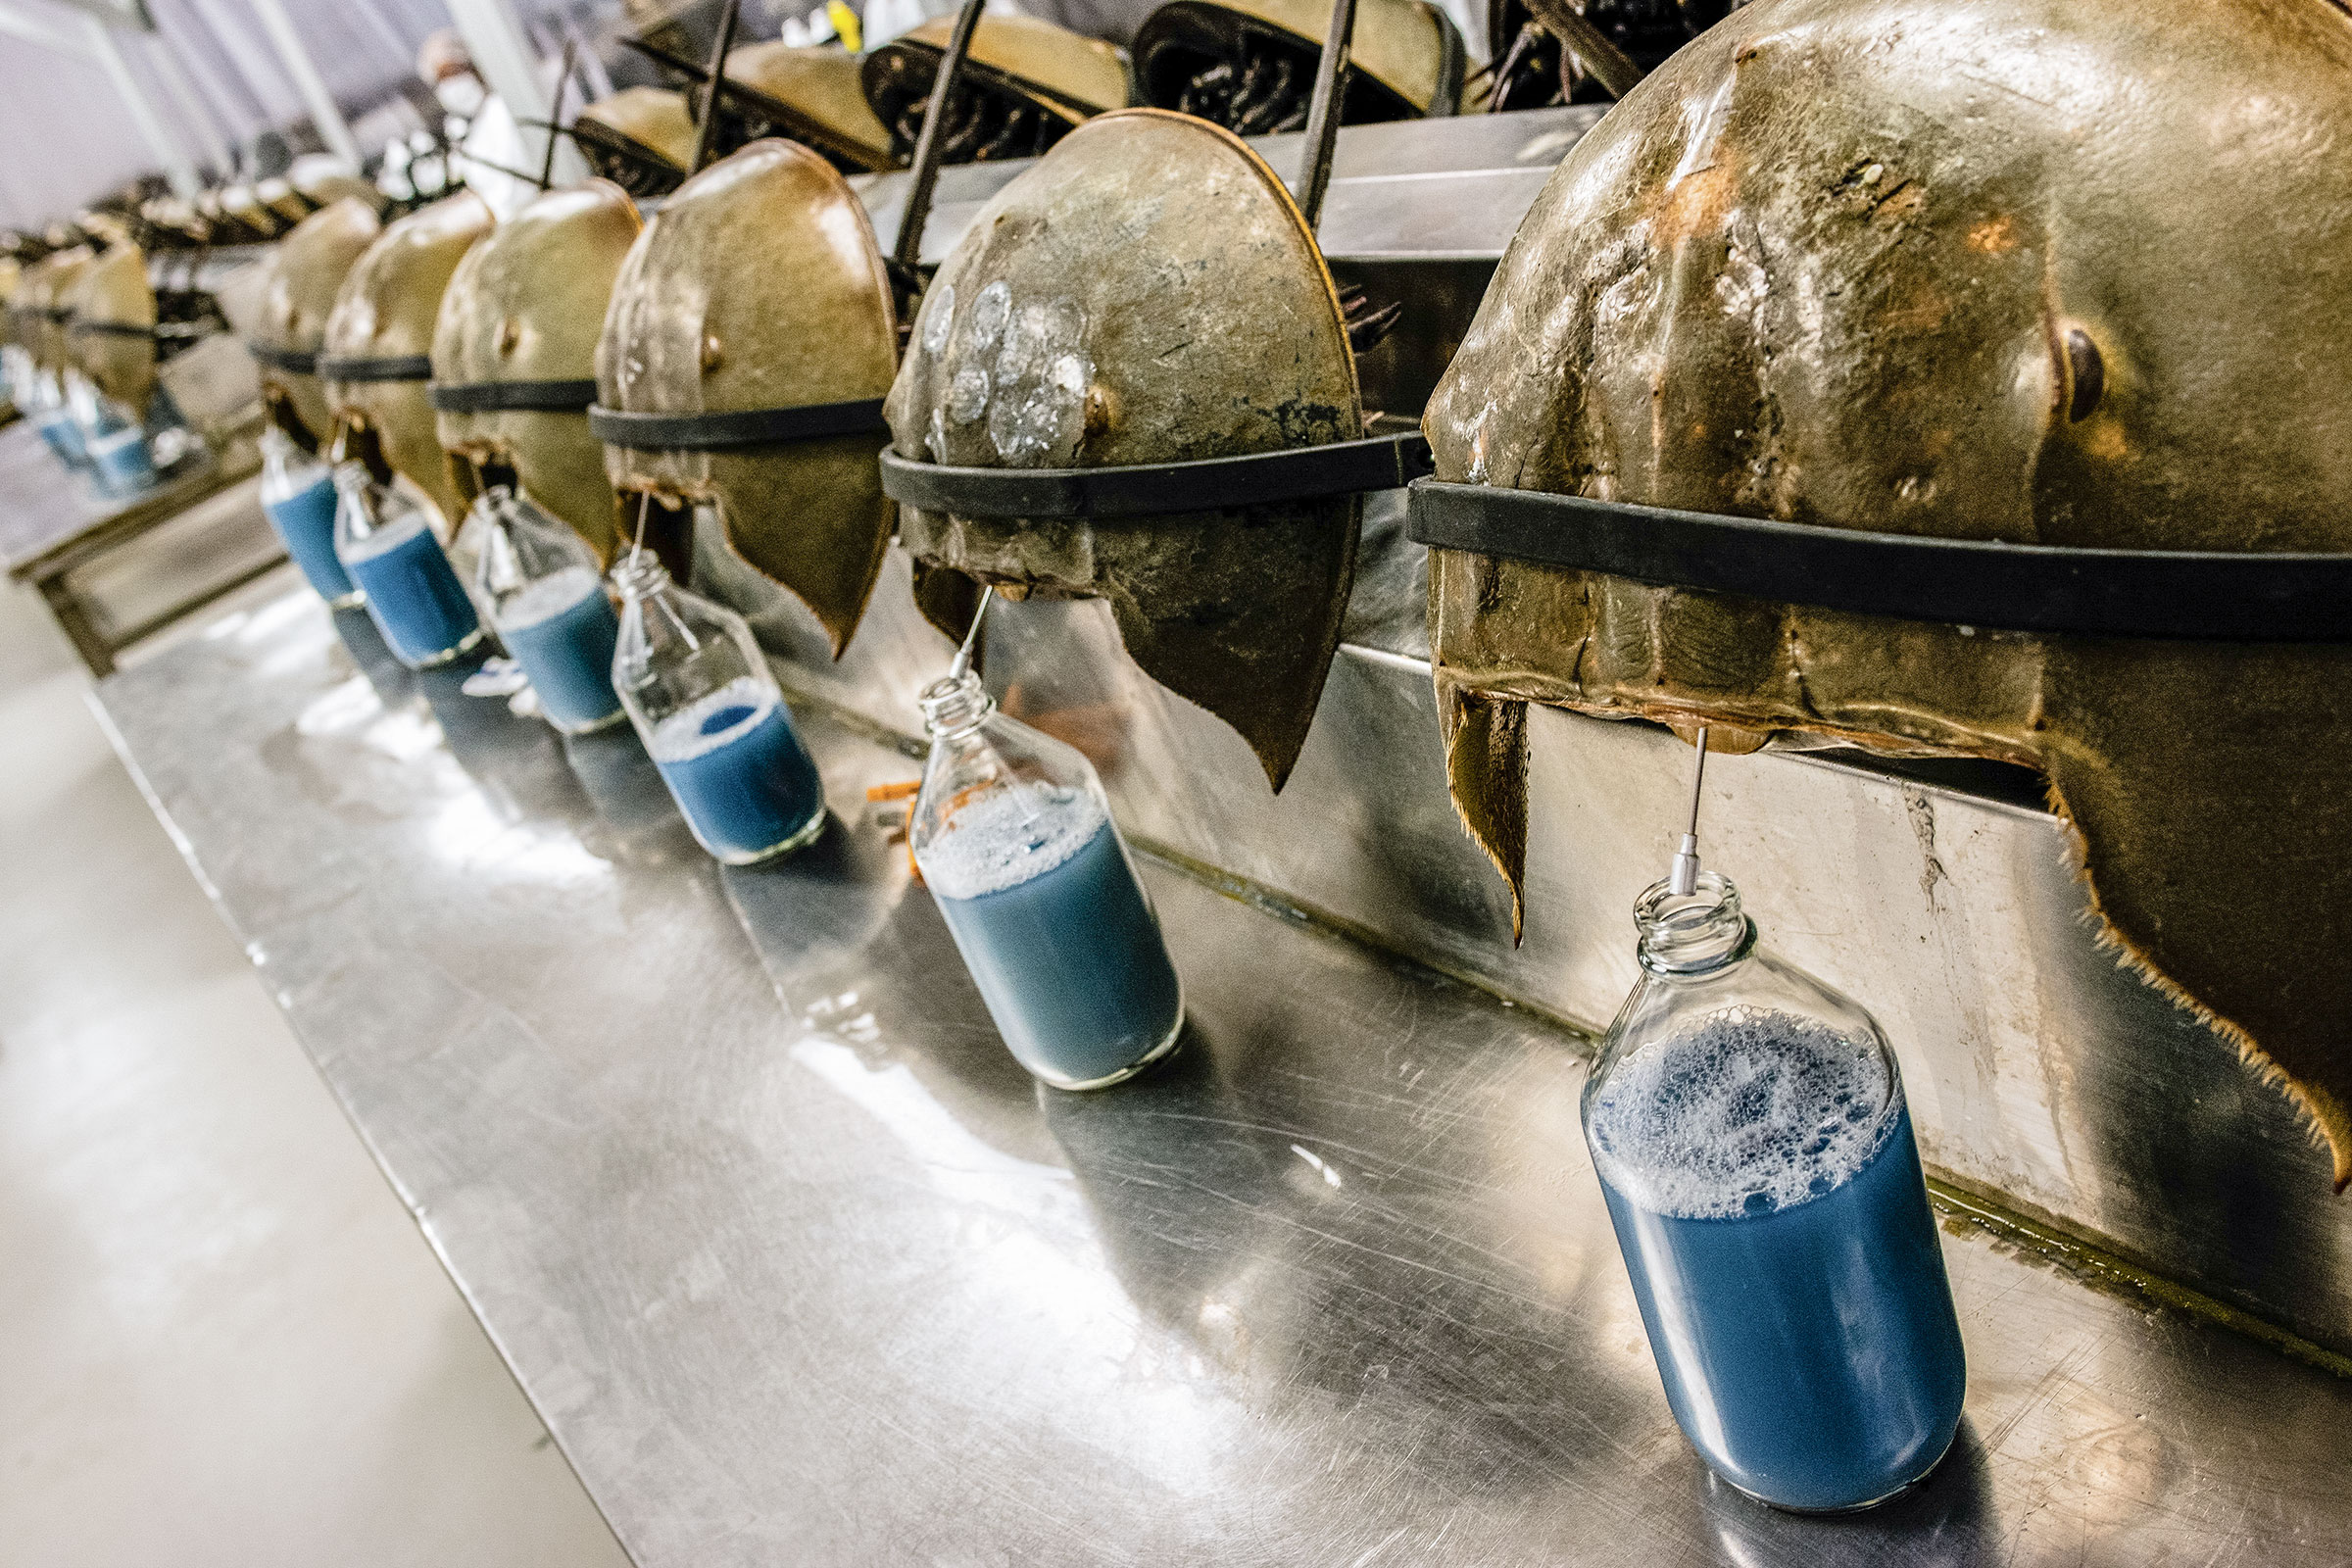 Horseshoe crabs are bled at the Charles River Laboratory in Charleston, South Carolina. Timothy Fadek/Redux